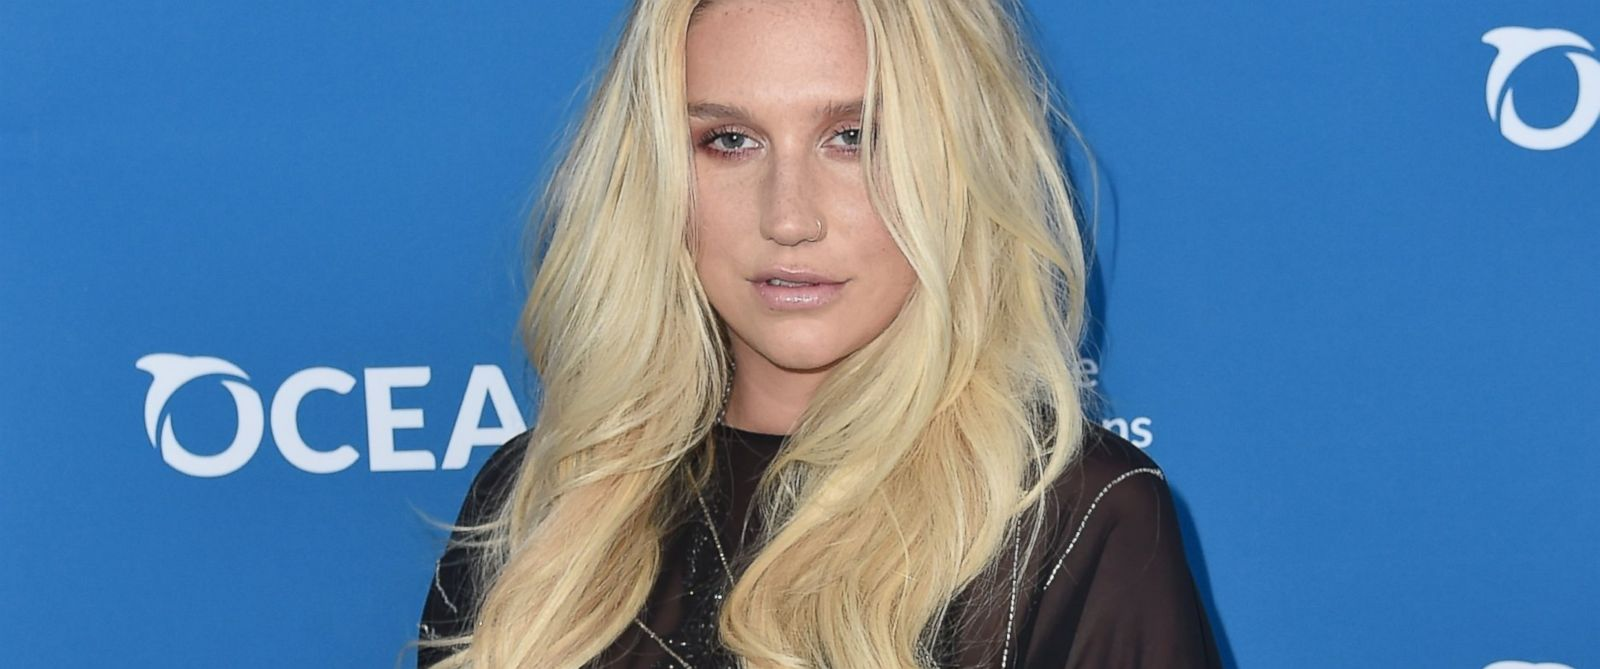 PHOTO:In this file photo, Kesha attends the Concert For Our Oceans, Sept. 28, 2015, in Beverly Hills, Calif.